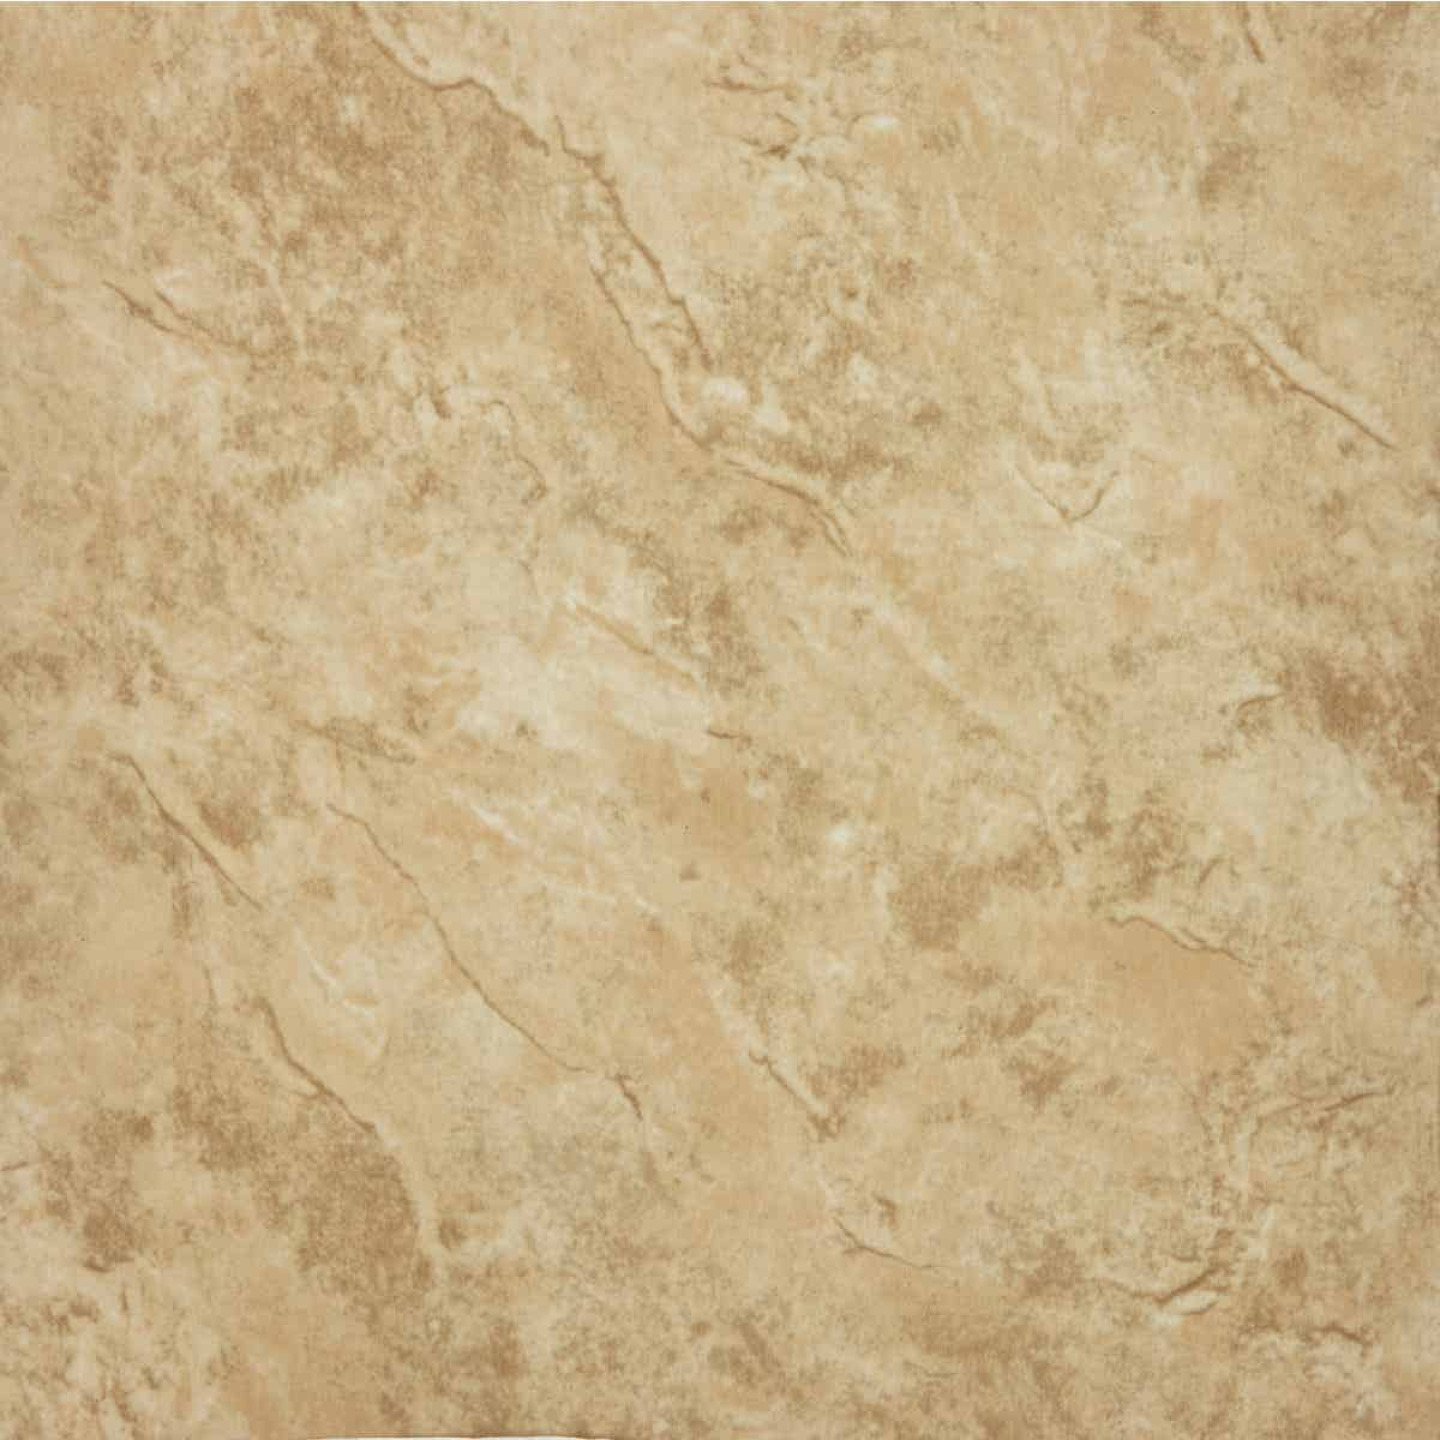 Home Impressions Sand Scape 12 In. x 12 In. Textured Vinyl Floor Tile (30 Sq. Ft./Box) Image 1